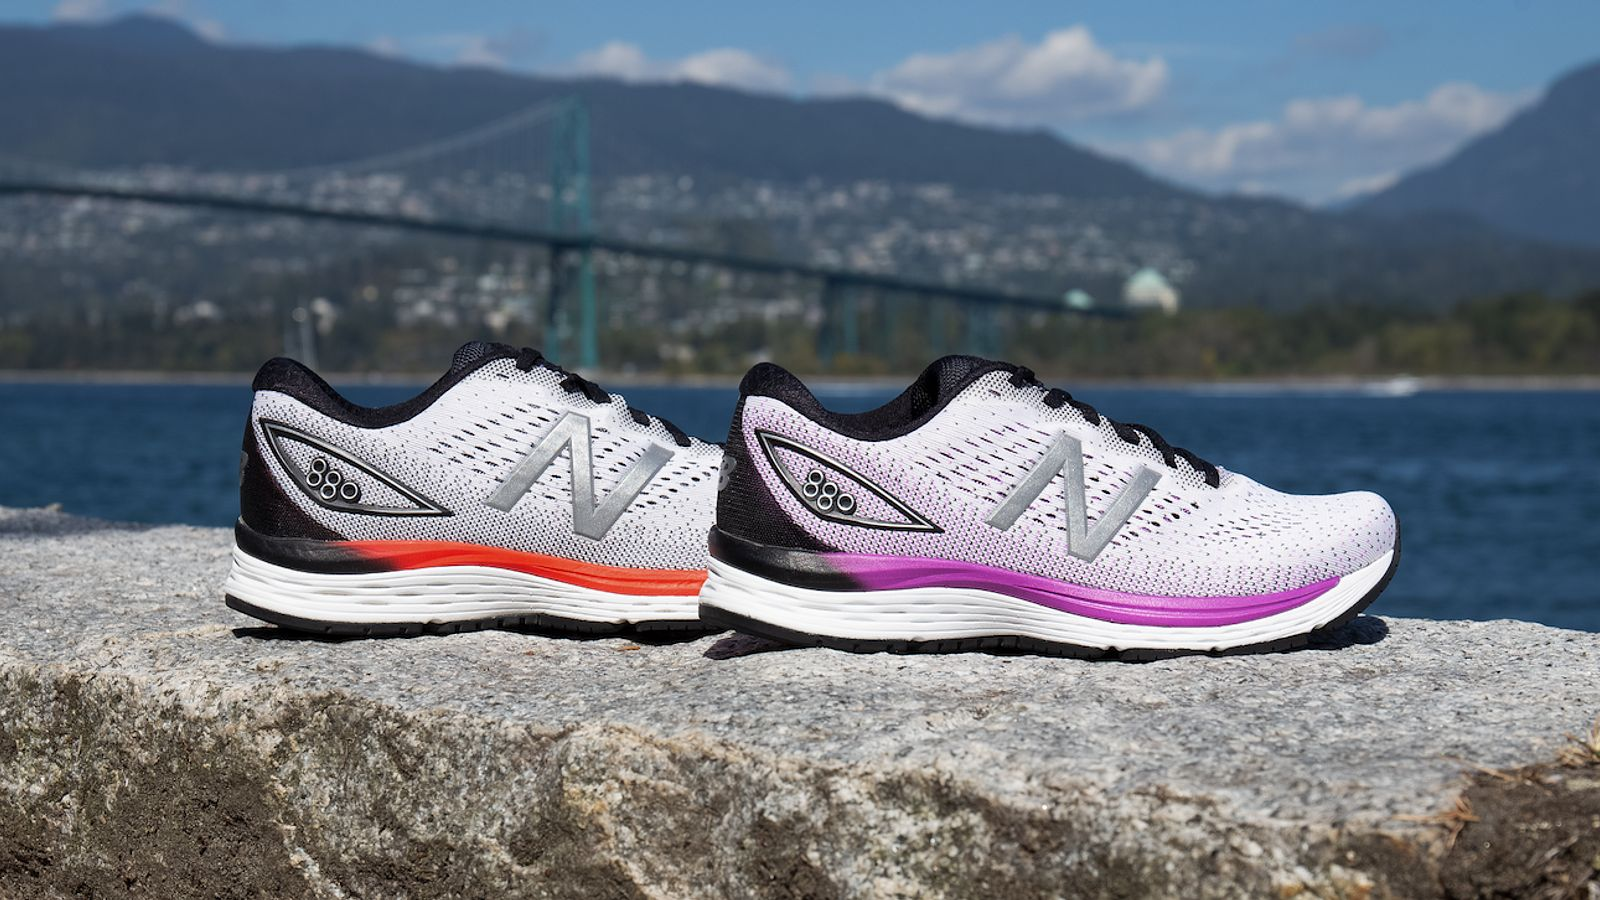 2e5d291d6aa85 Shoe Review: New Balance 880v9 | Fleet Feet